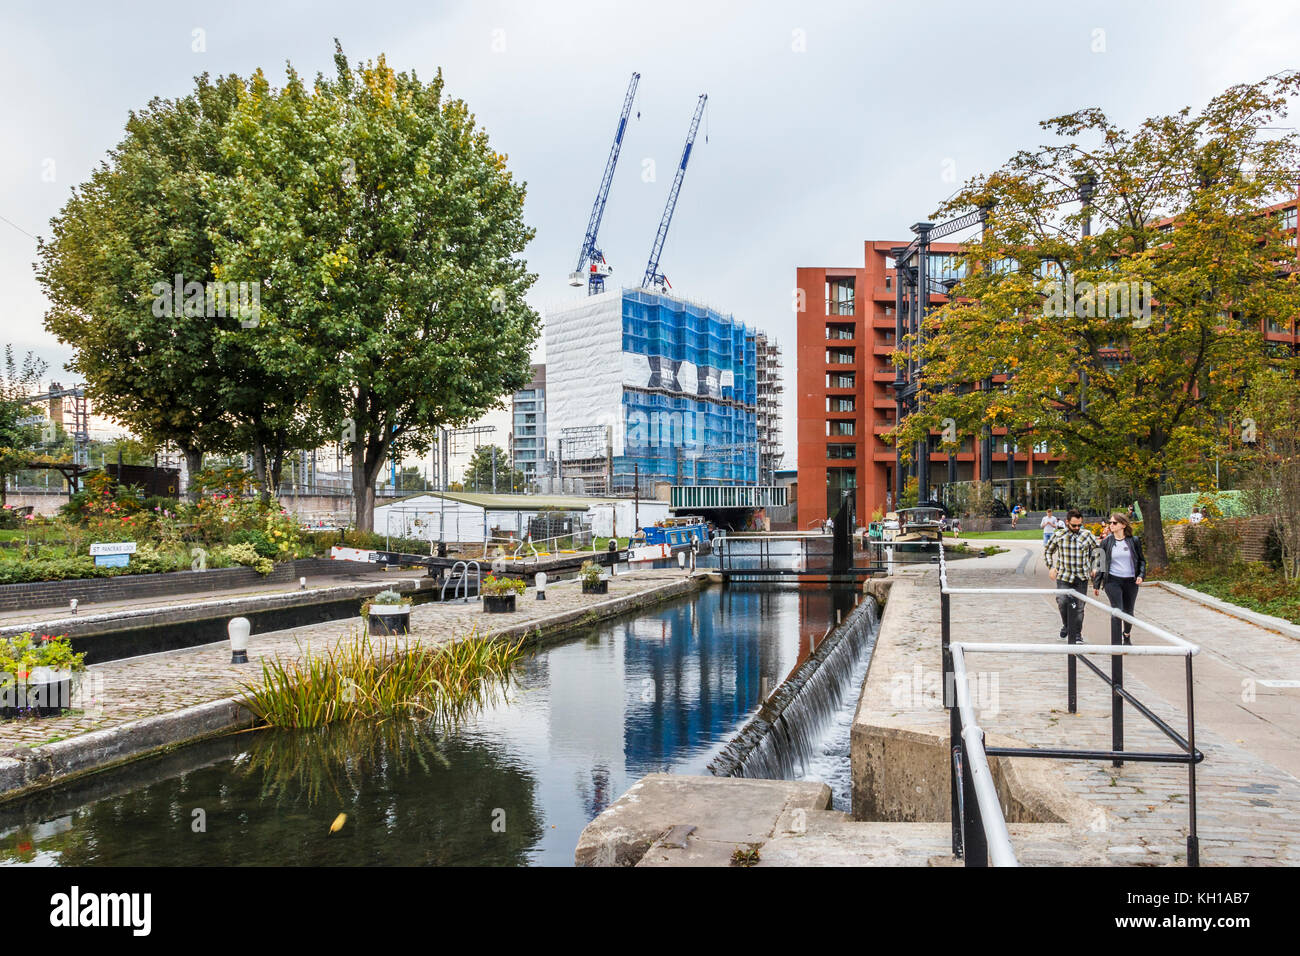 Man and woman strolling on the towpath of Regent's Canal at St. Pancras Lock, Kings Cross, London, UK, construction - Stock Image